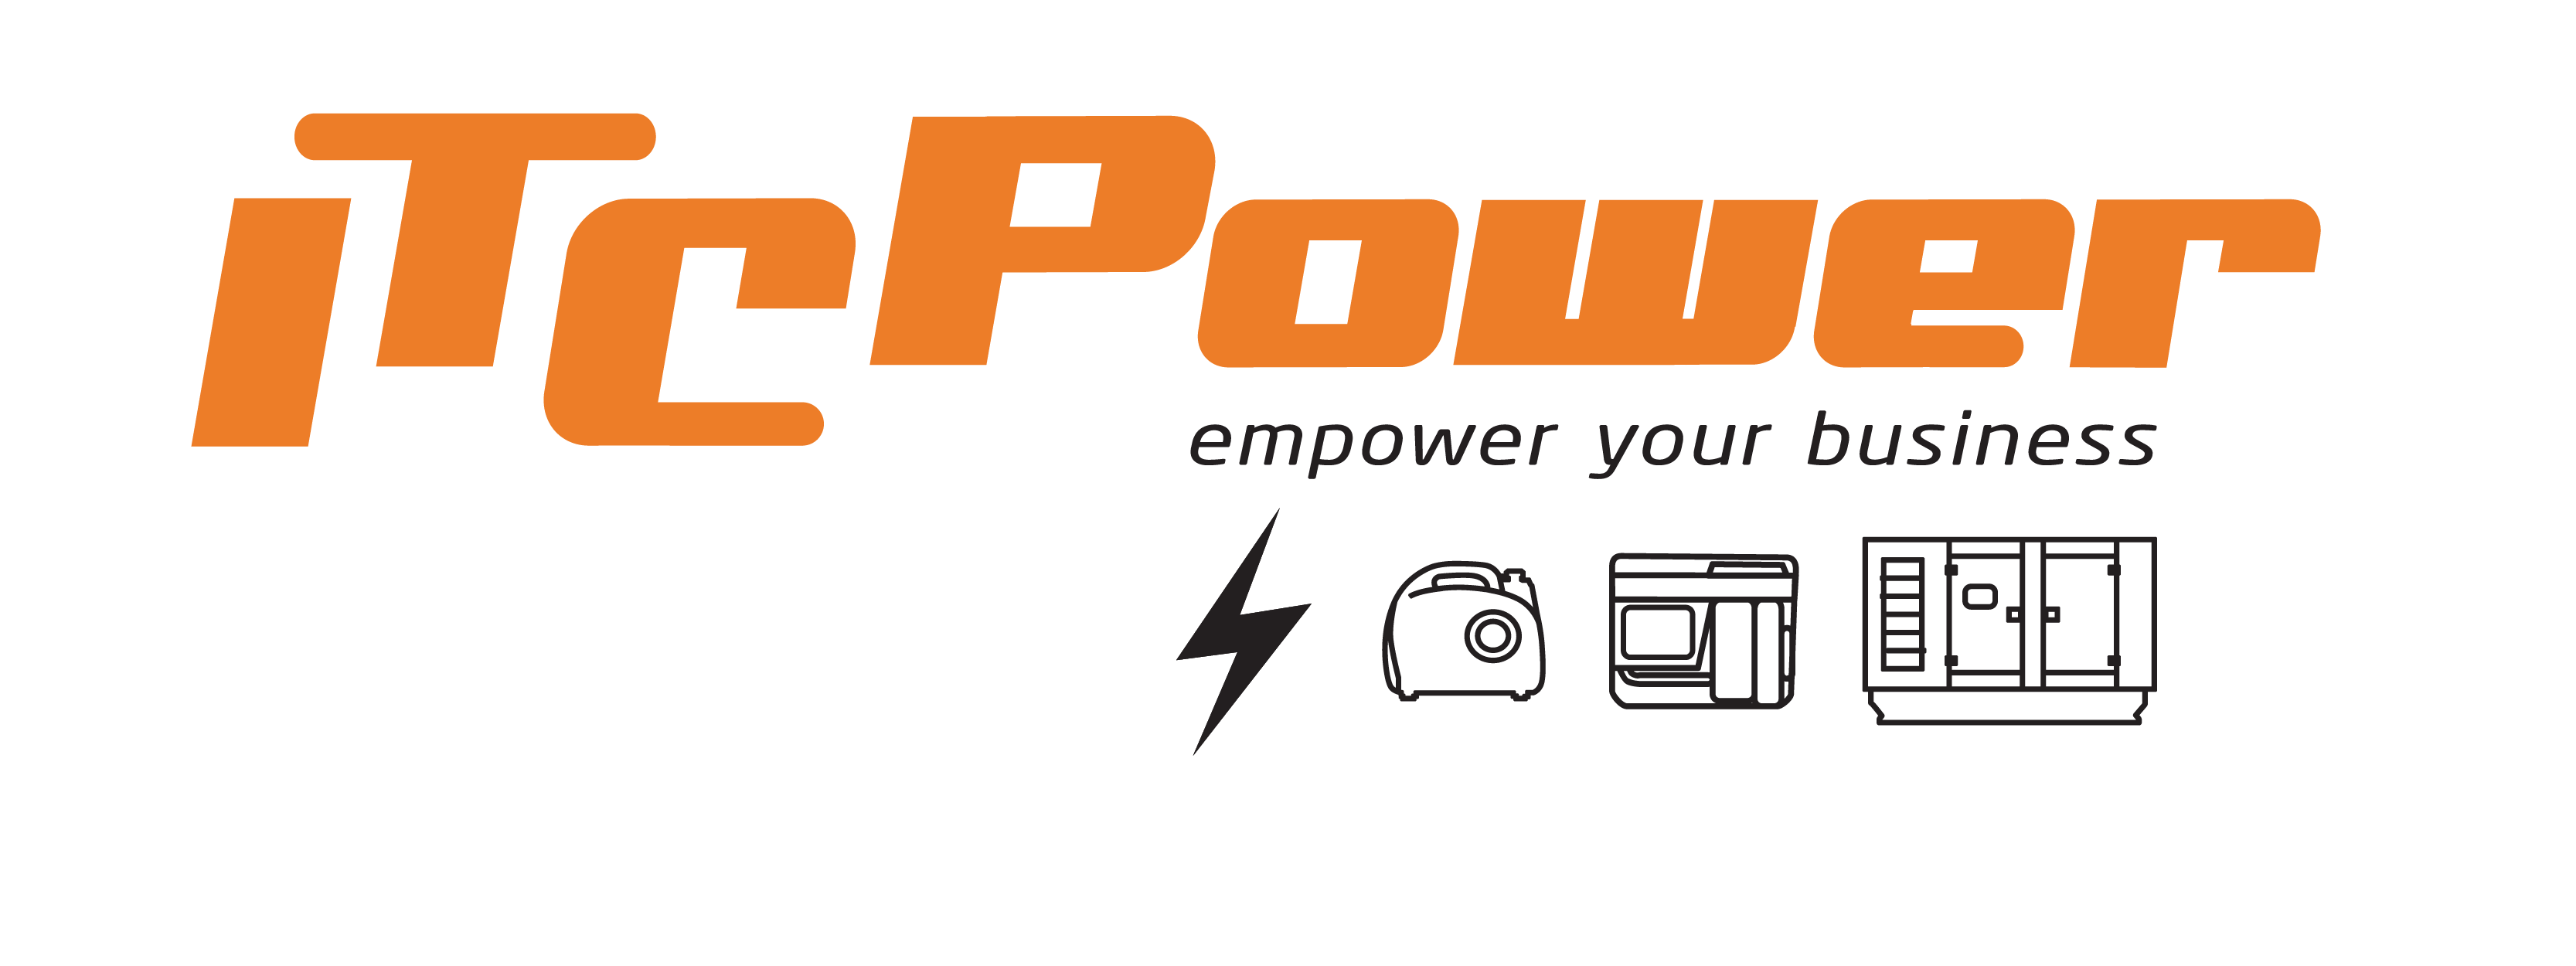 ITCPOWER